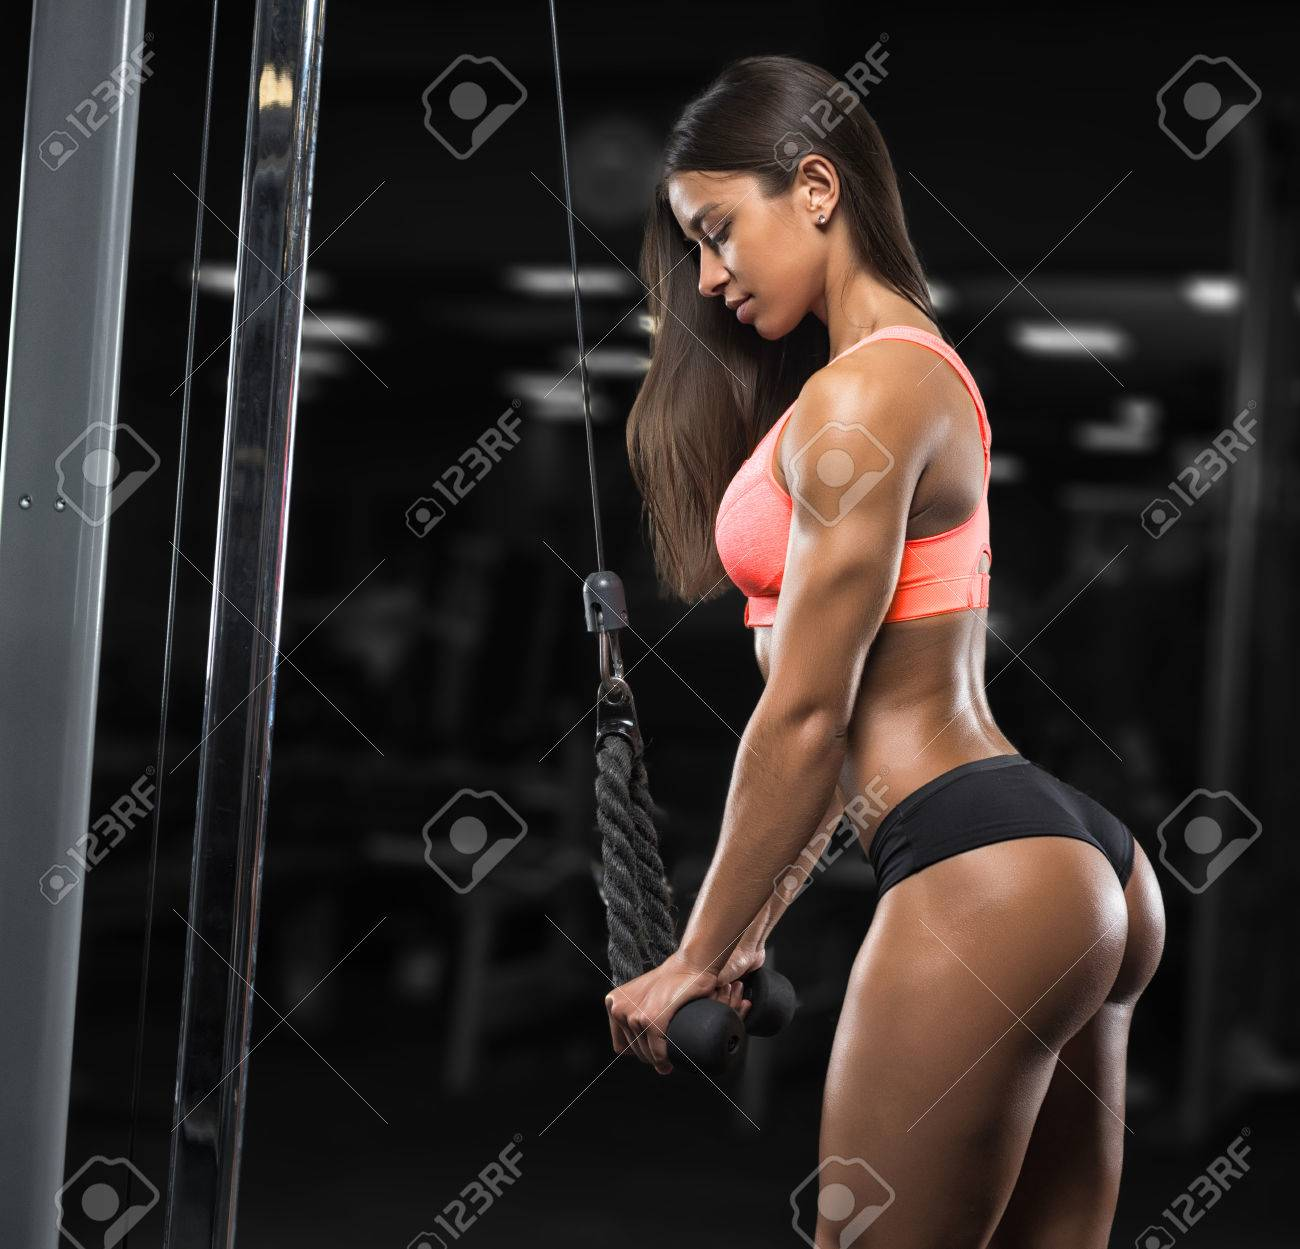 Fitness Girl With A Beautiful Smile Posing In The Gym Stock Photo 66212196